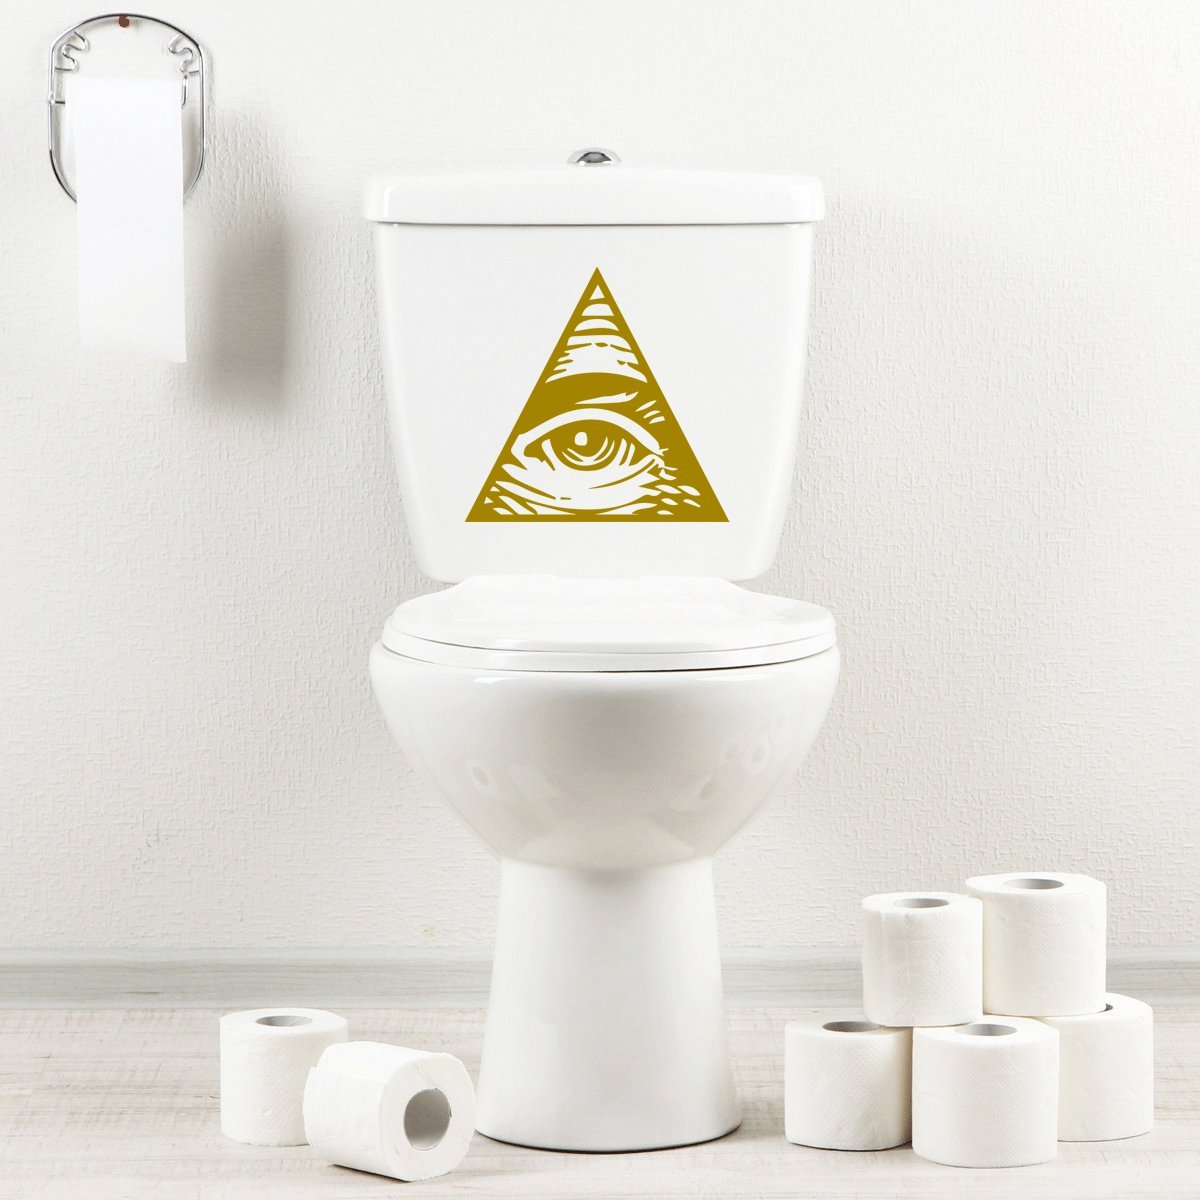 StickAny Bathroom Decal Series Illuminati Eyeball Sticker for Toilet Bowl, Bath, Seat (Black)